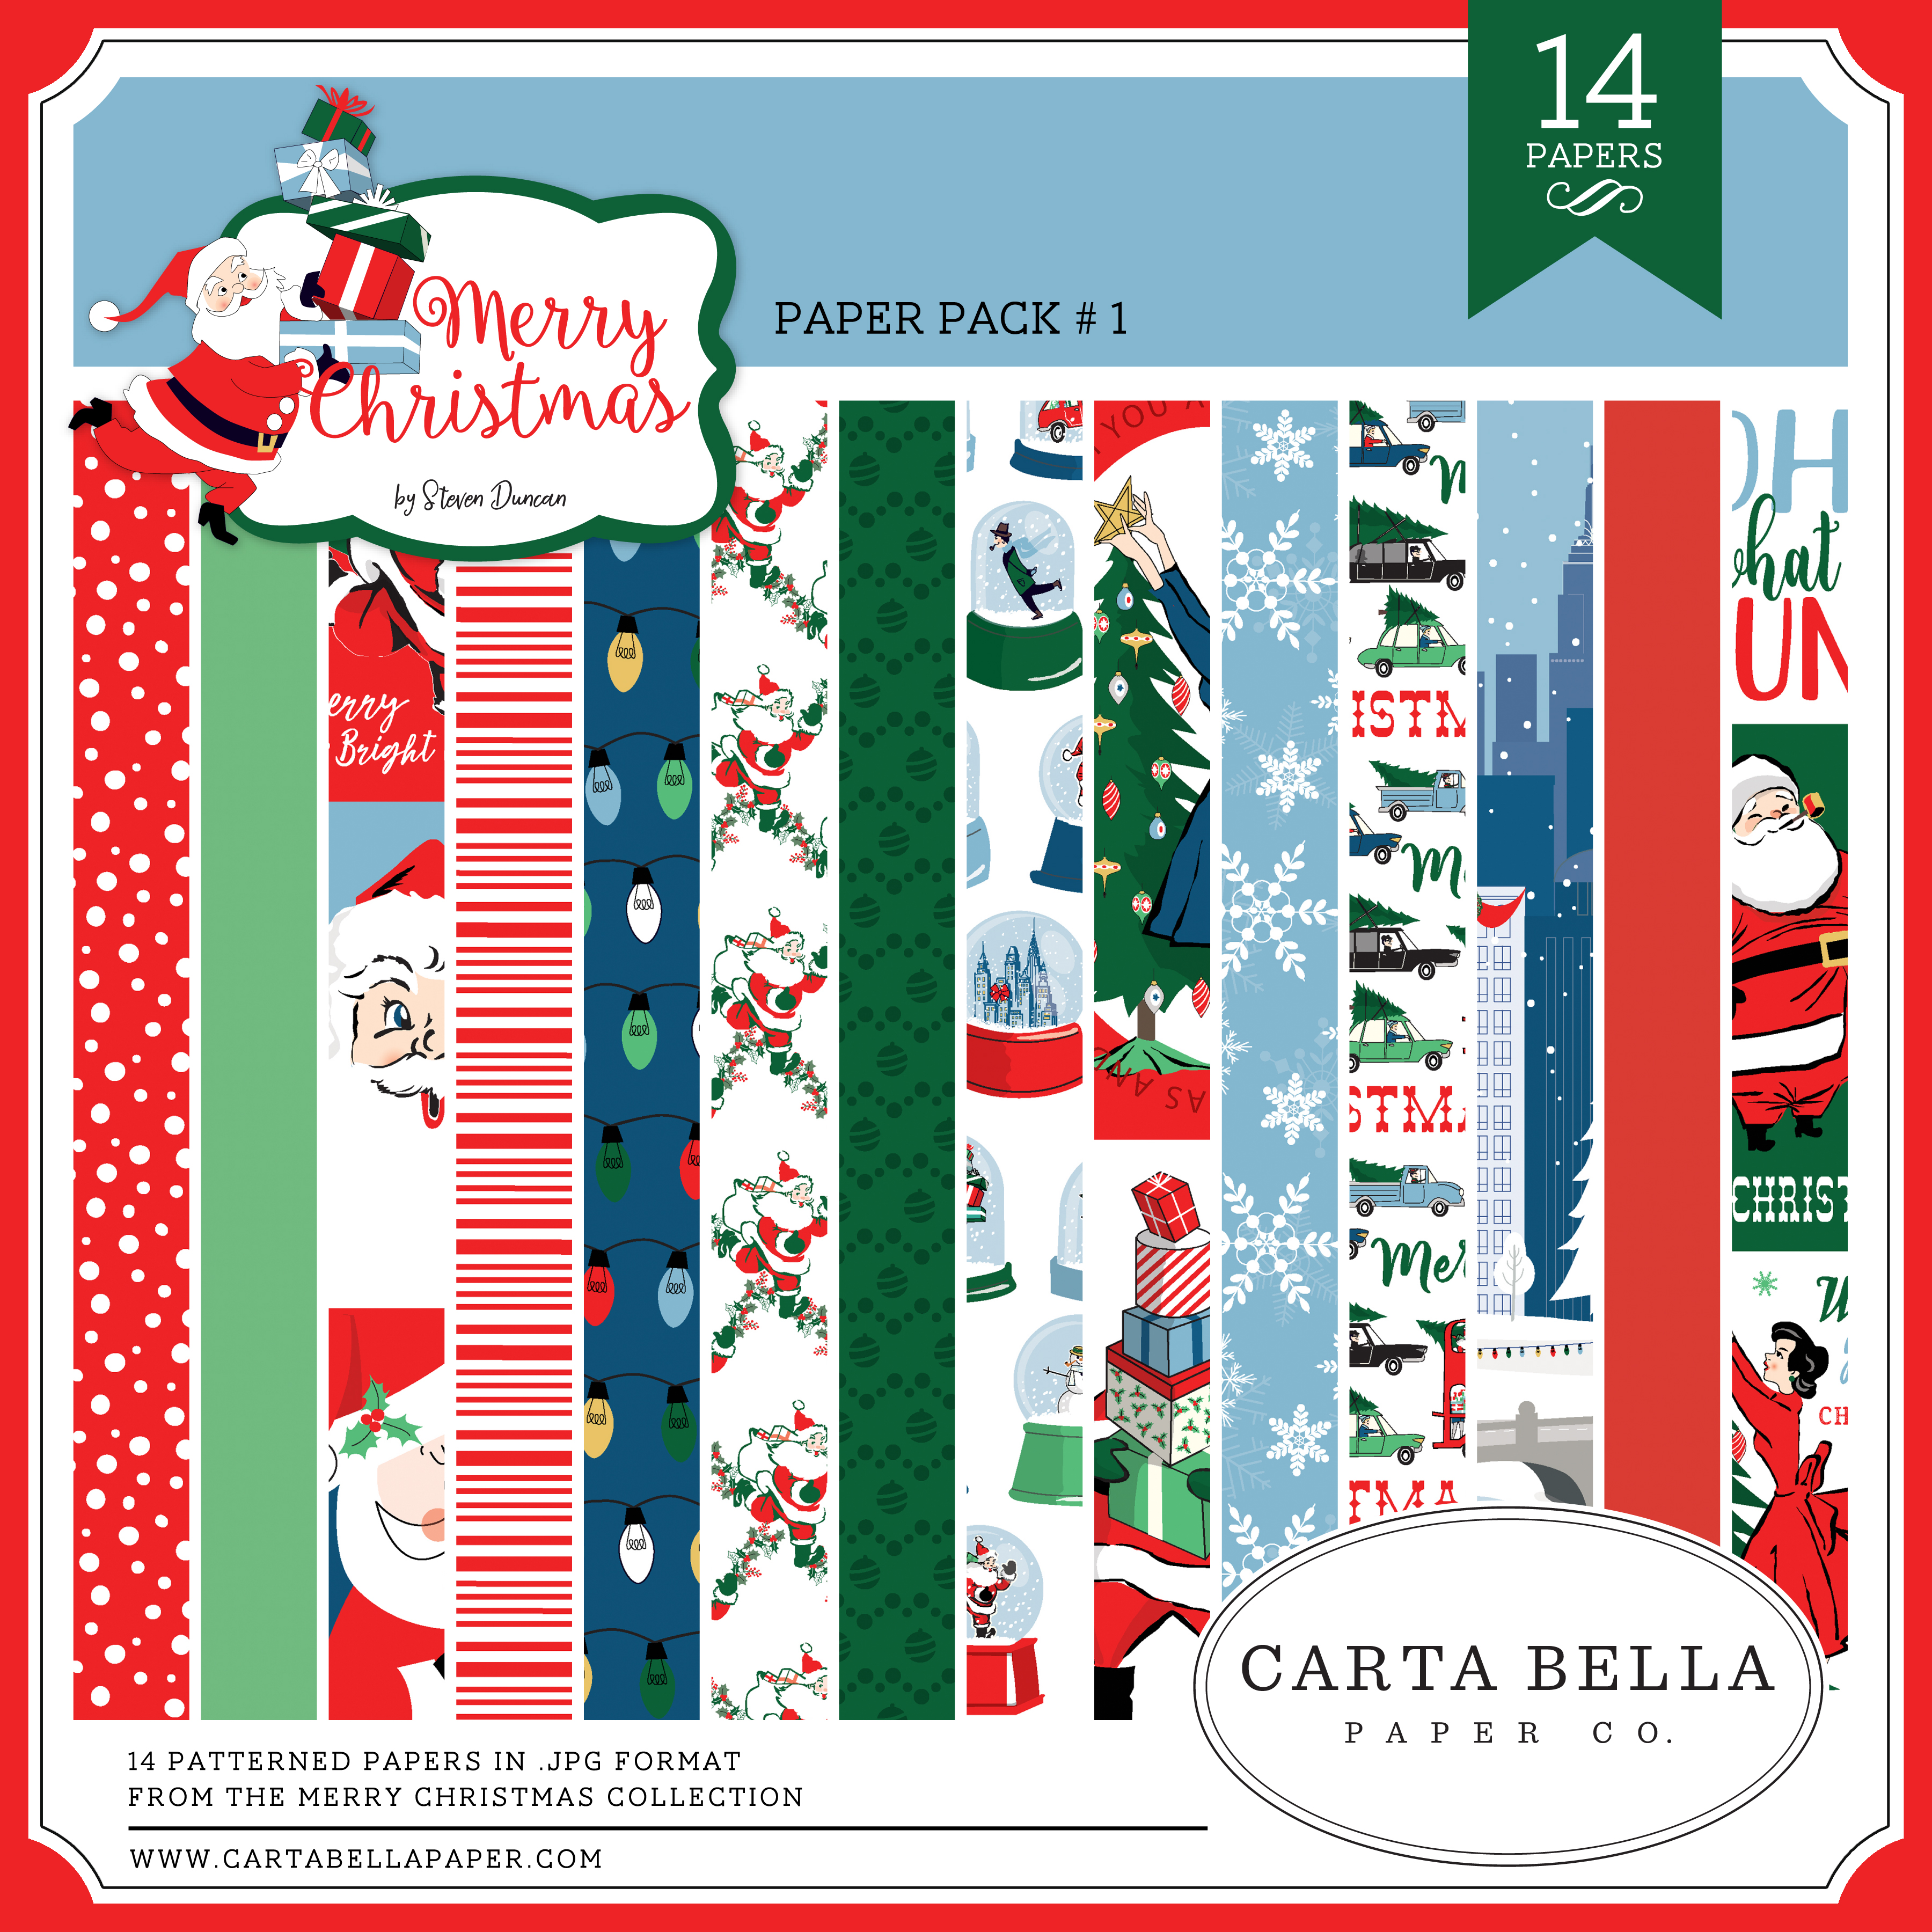 Merry Christmas CB Paper Pack #1